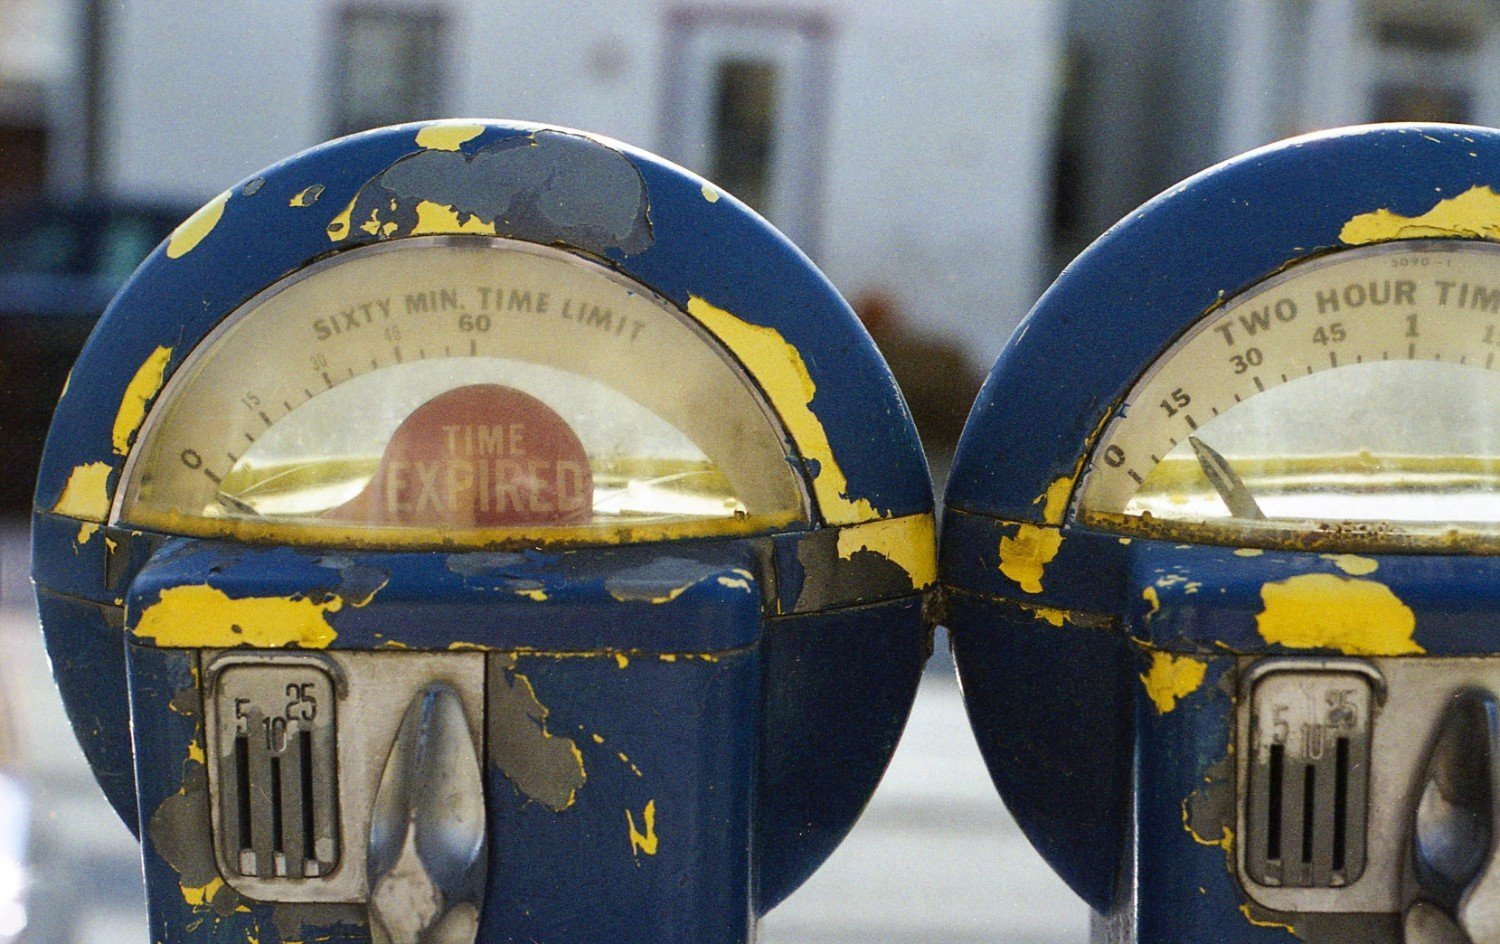 parking-meters-kindness